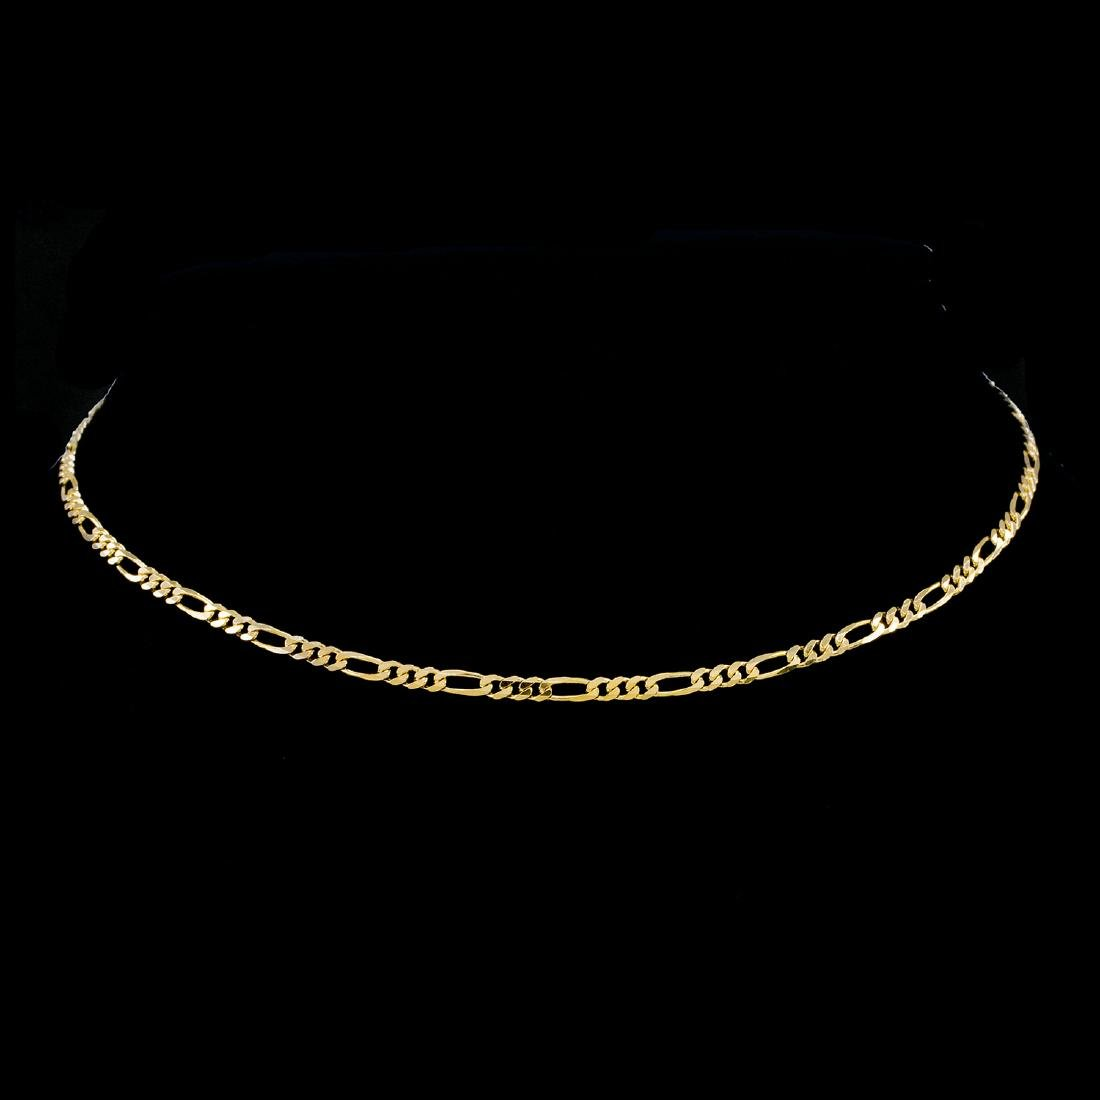 *Fine Jewelry 14 KT Gold, 6.5GM. 16'' Chain Necklace